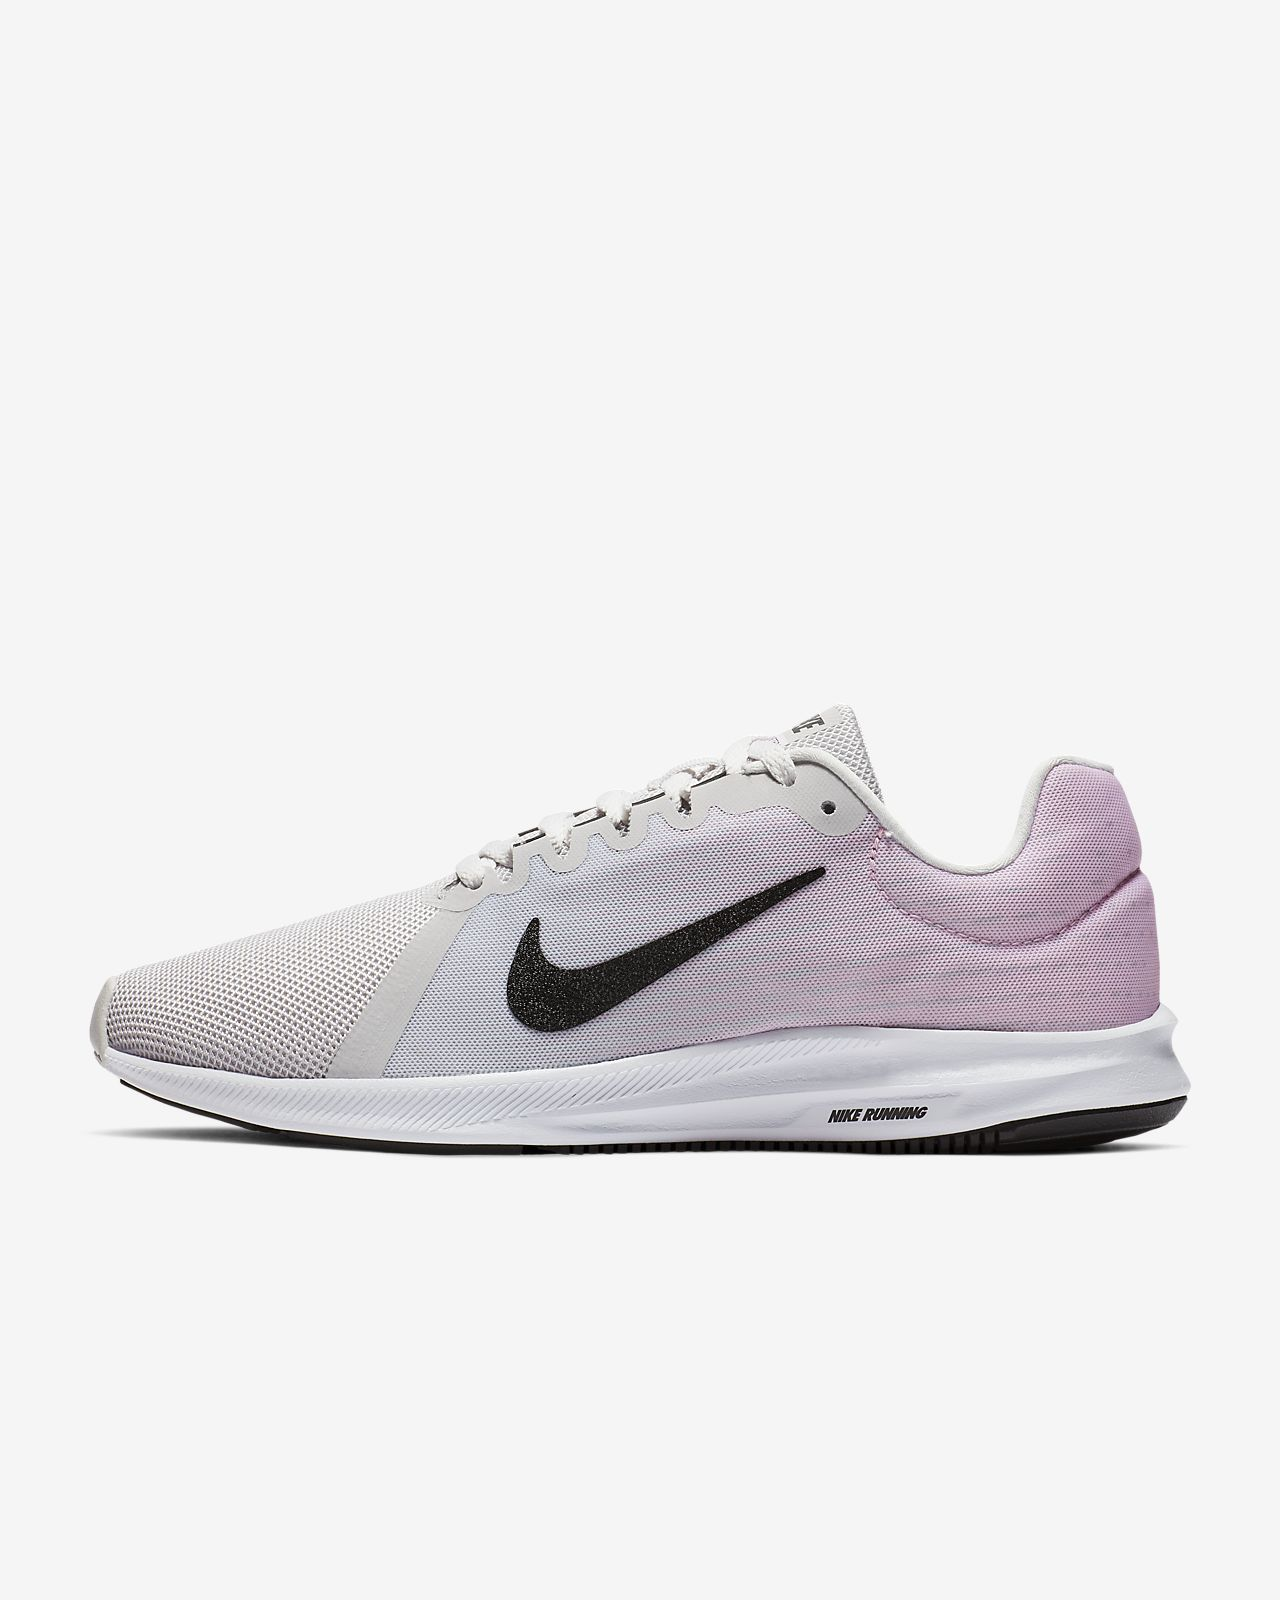 a122f155543 Nike Downshifter 8 Women s Running Shoe. Nike.com CA